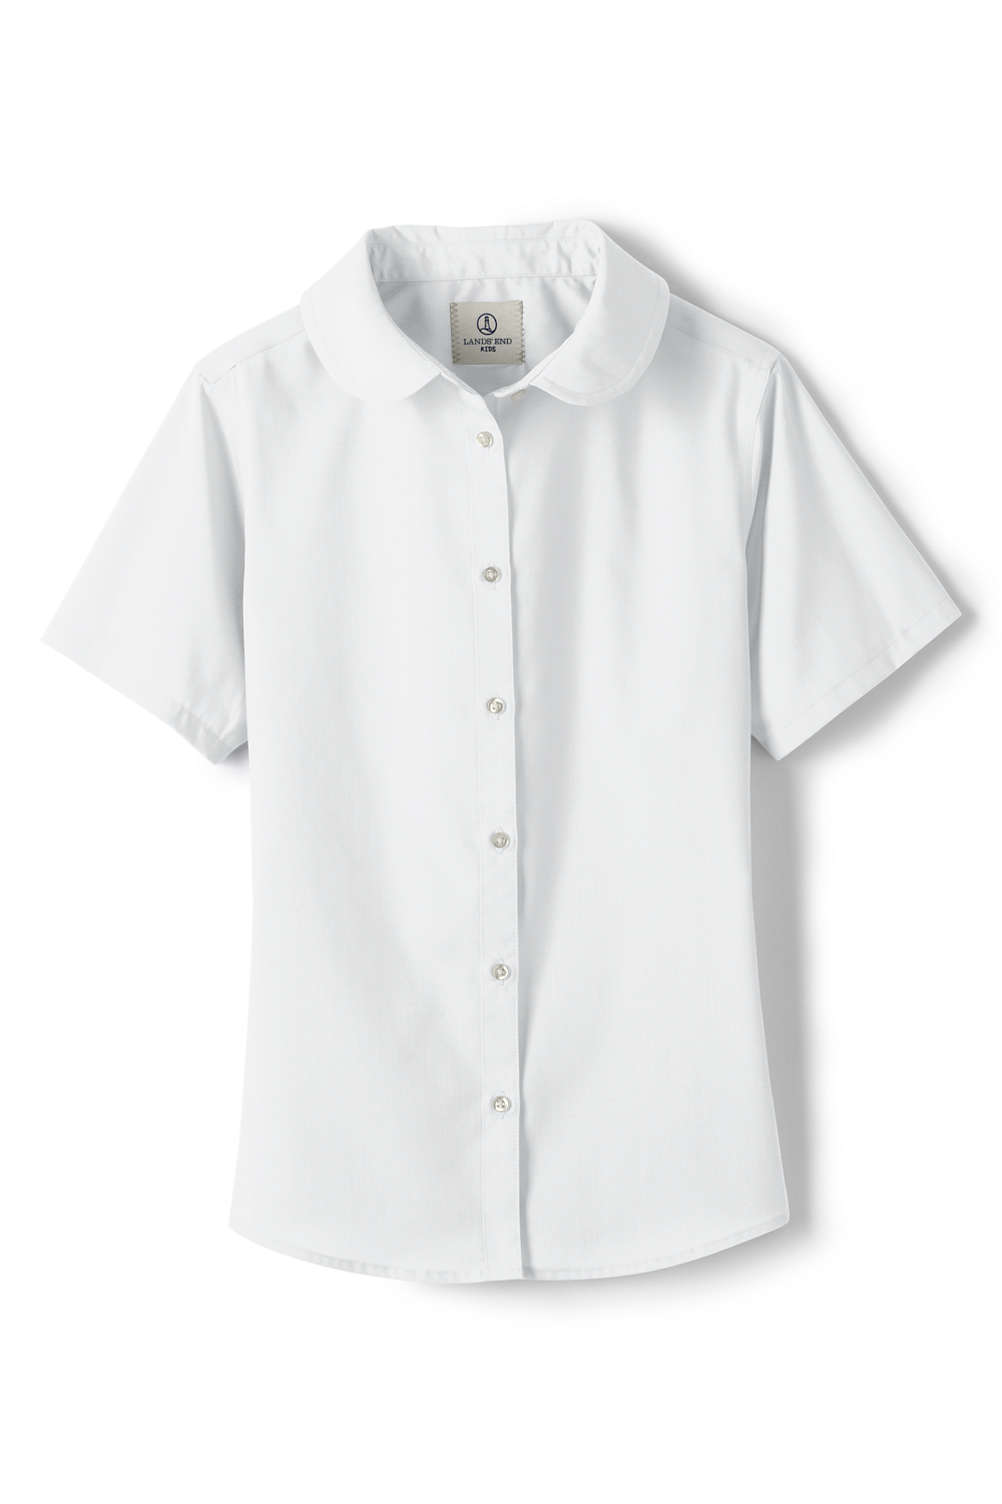 29eed16885c38 School Uniform Short Sleeve Peter Pan Collar Shirt from Lands  End